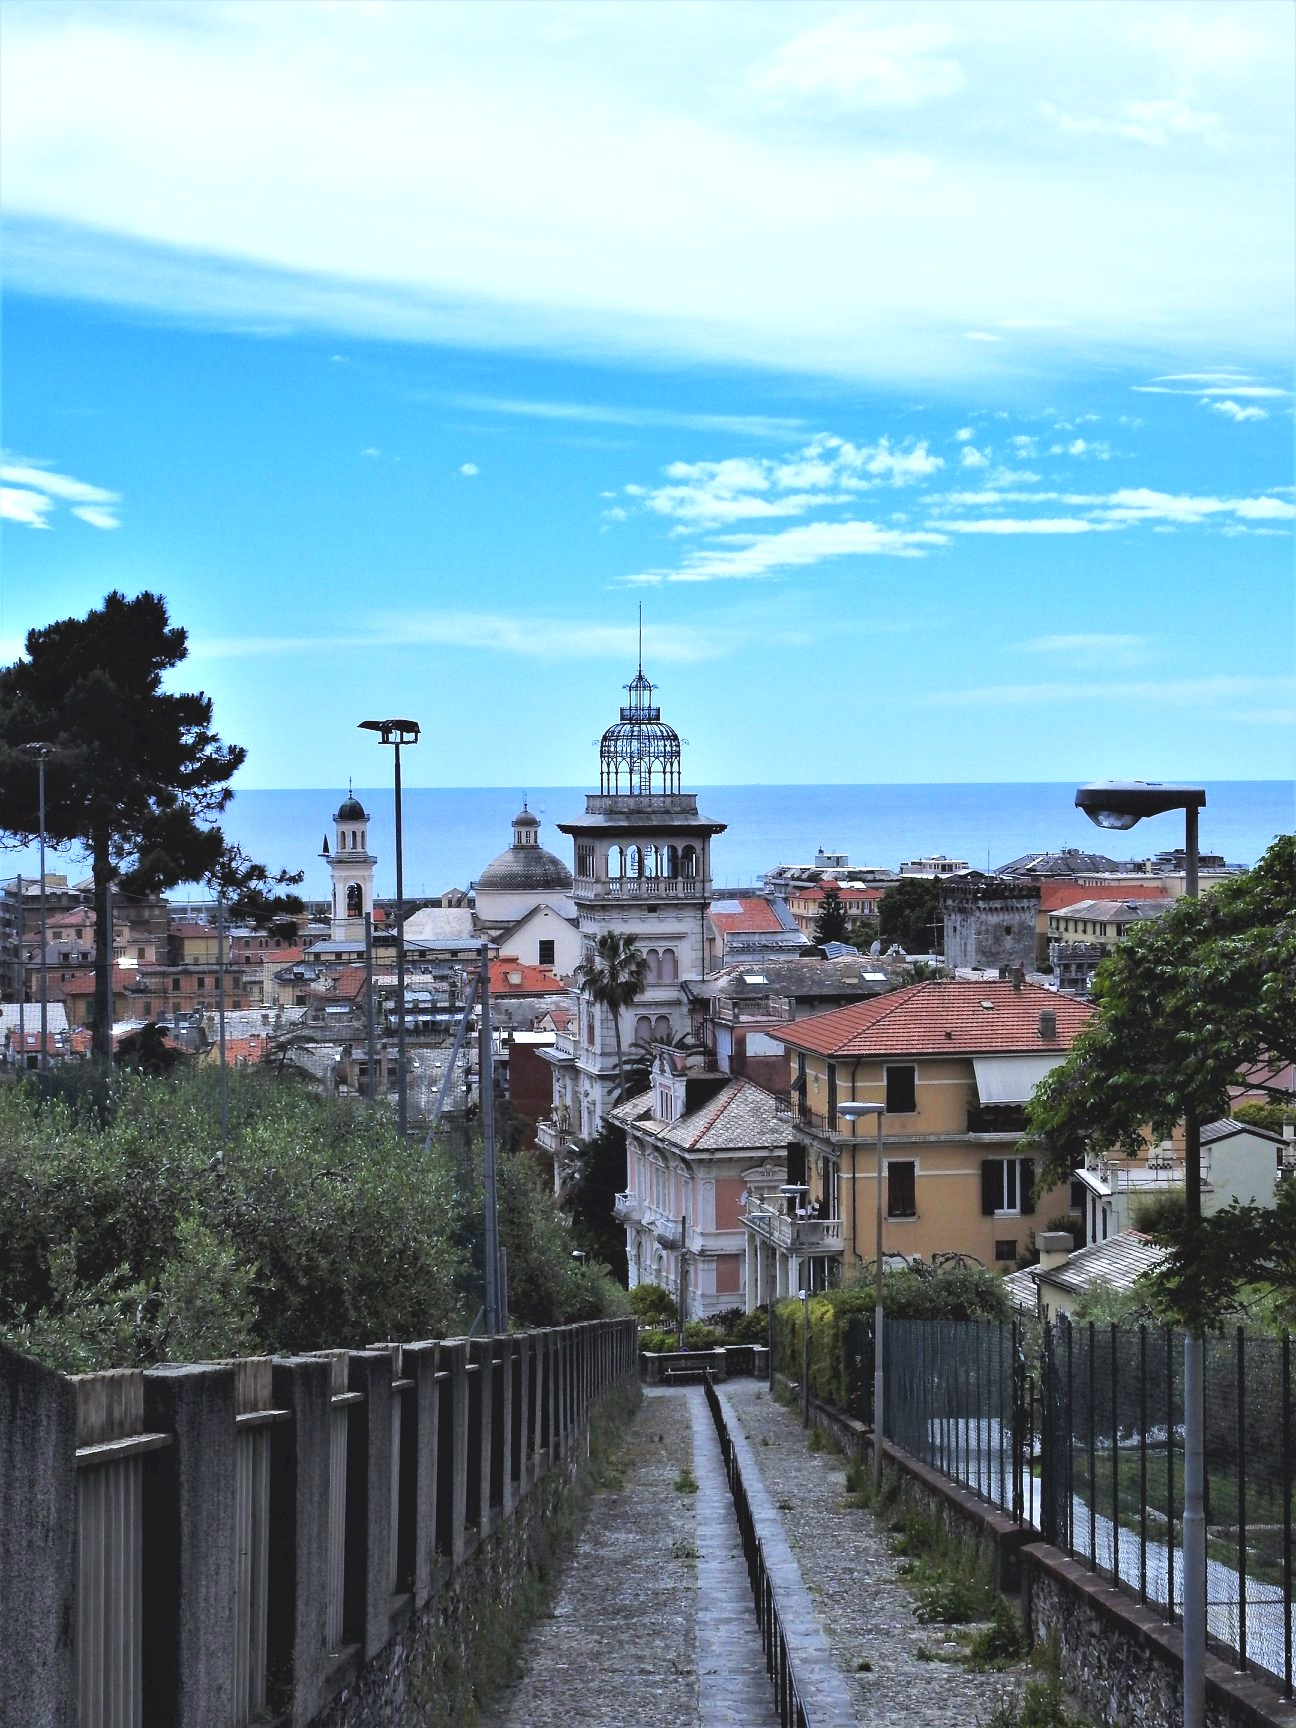 Chiavari from the hills above